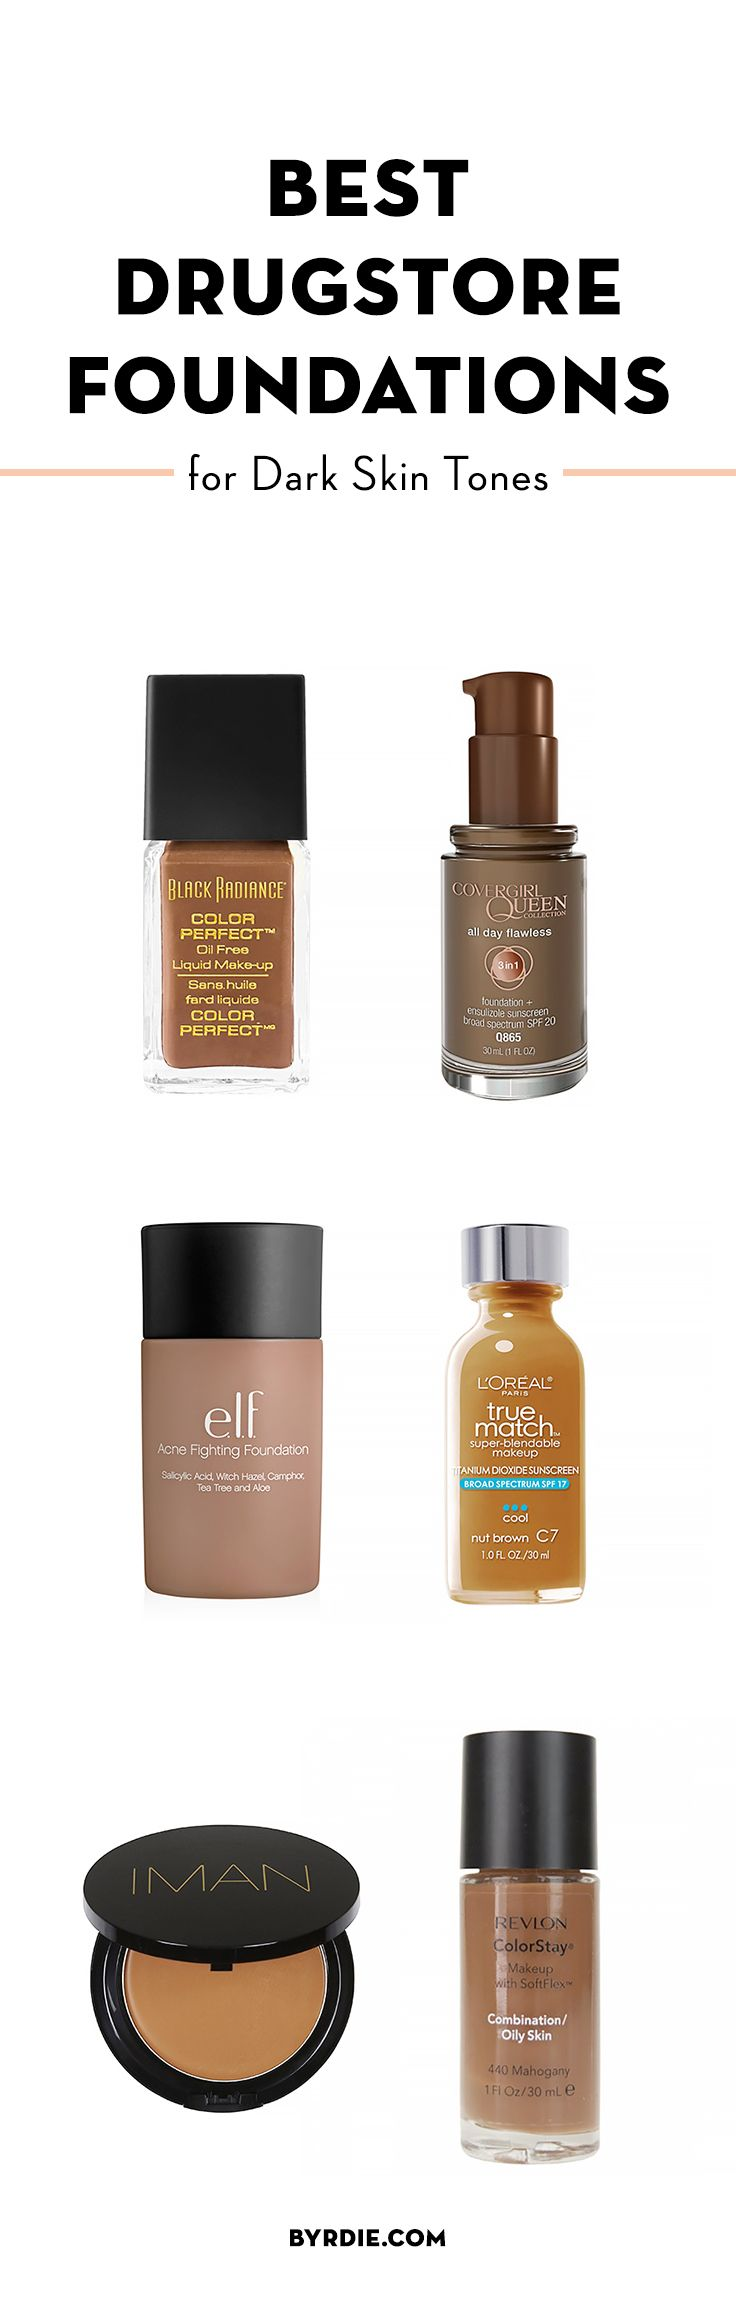 Top drugstore foundations for dark skin tones Skin Care products - http://amzn.to/2iSUZHs